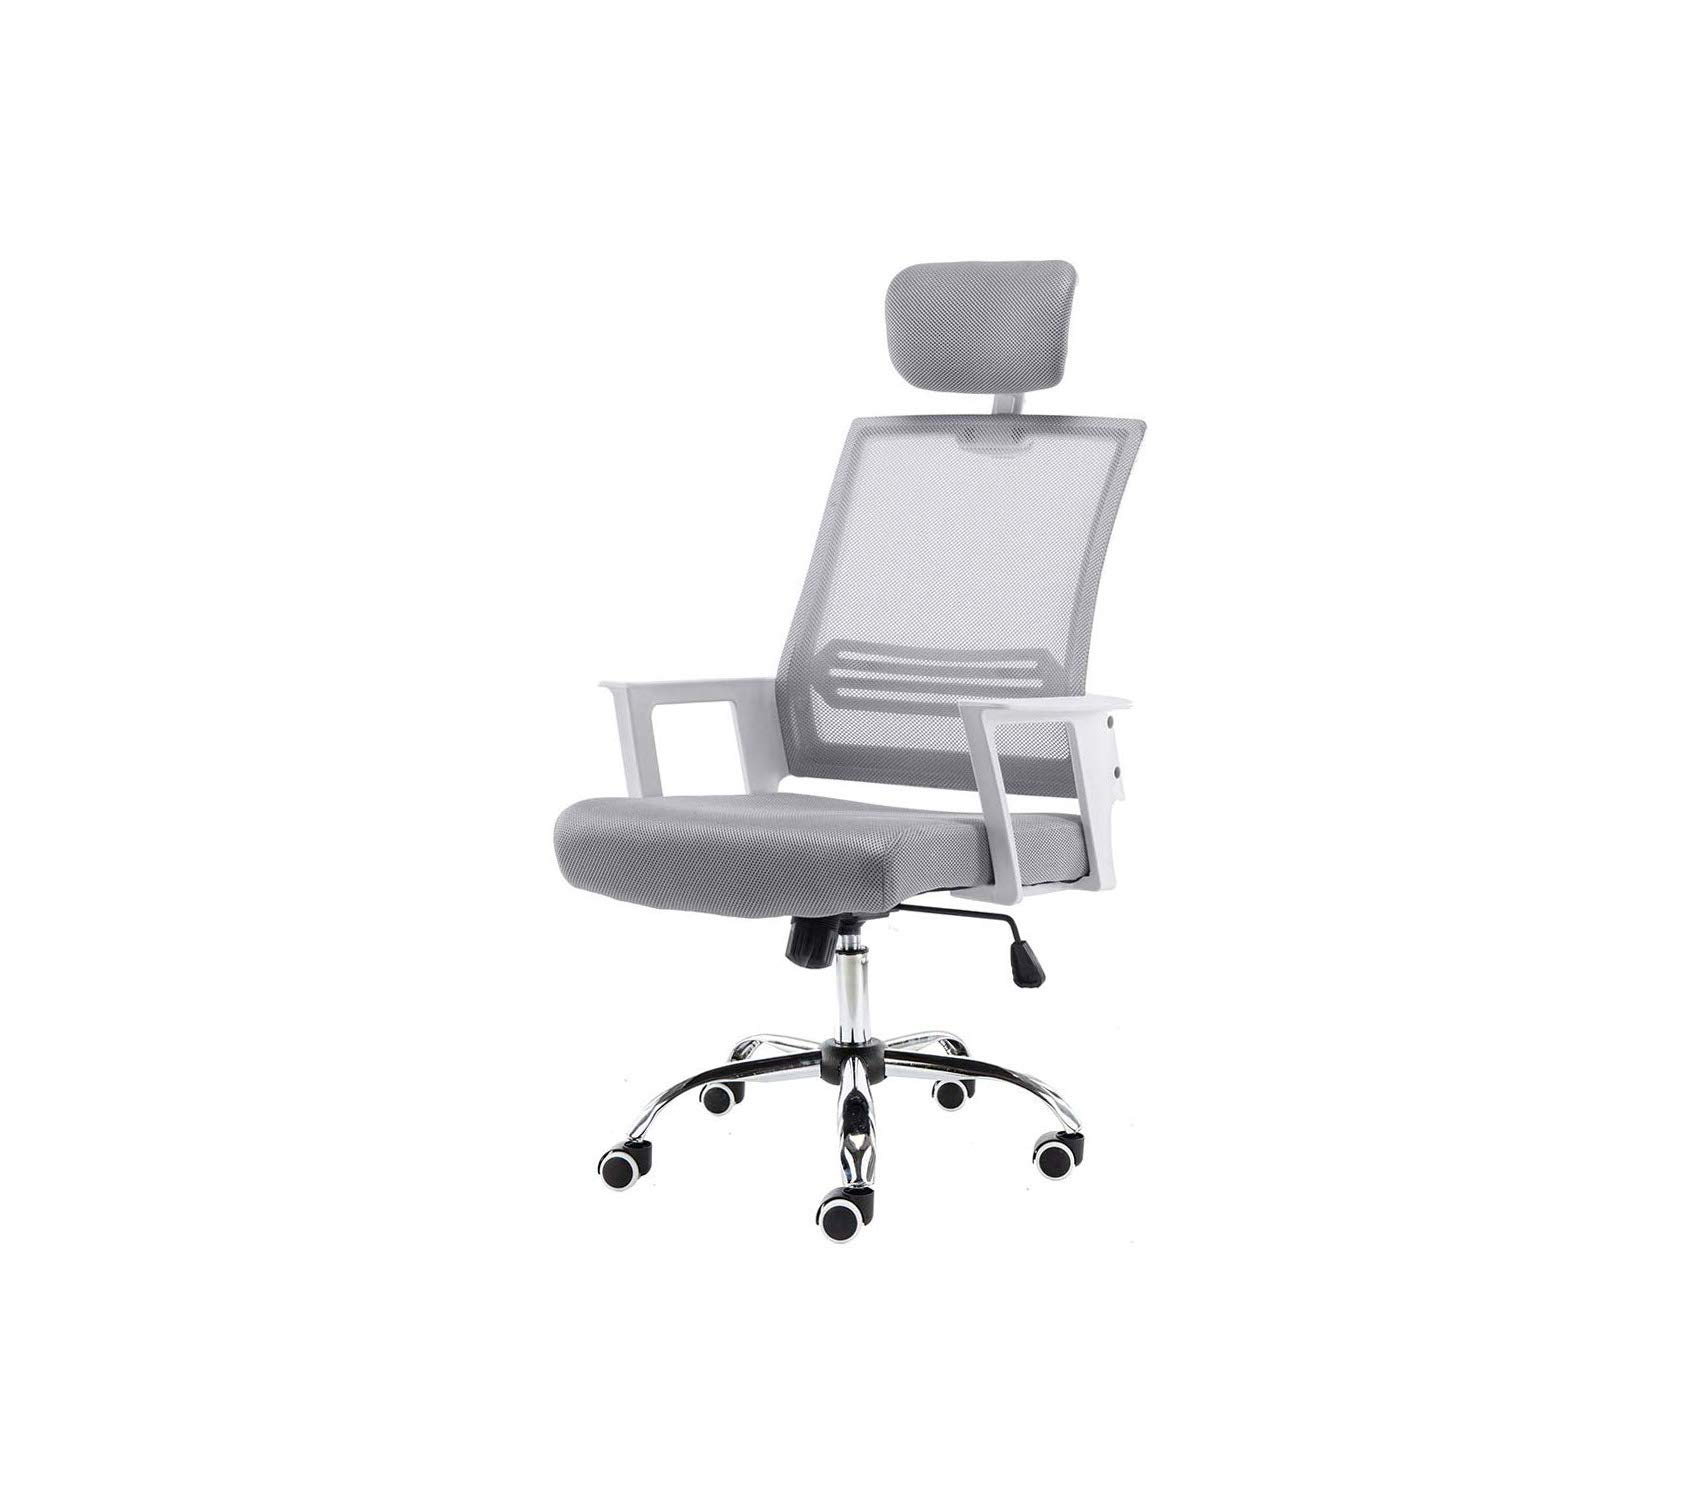 Mоdеrnhоmе Deluxe Premium Collection Home WHGRAY Metro Mid - Back Office Chair White/Gray Decor Comfy Living Furniture